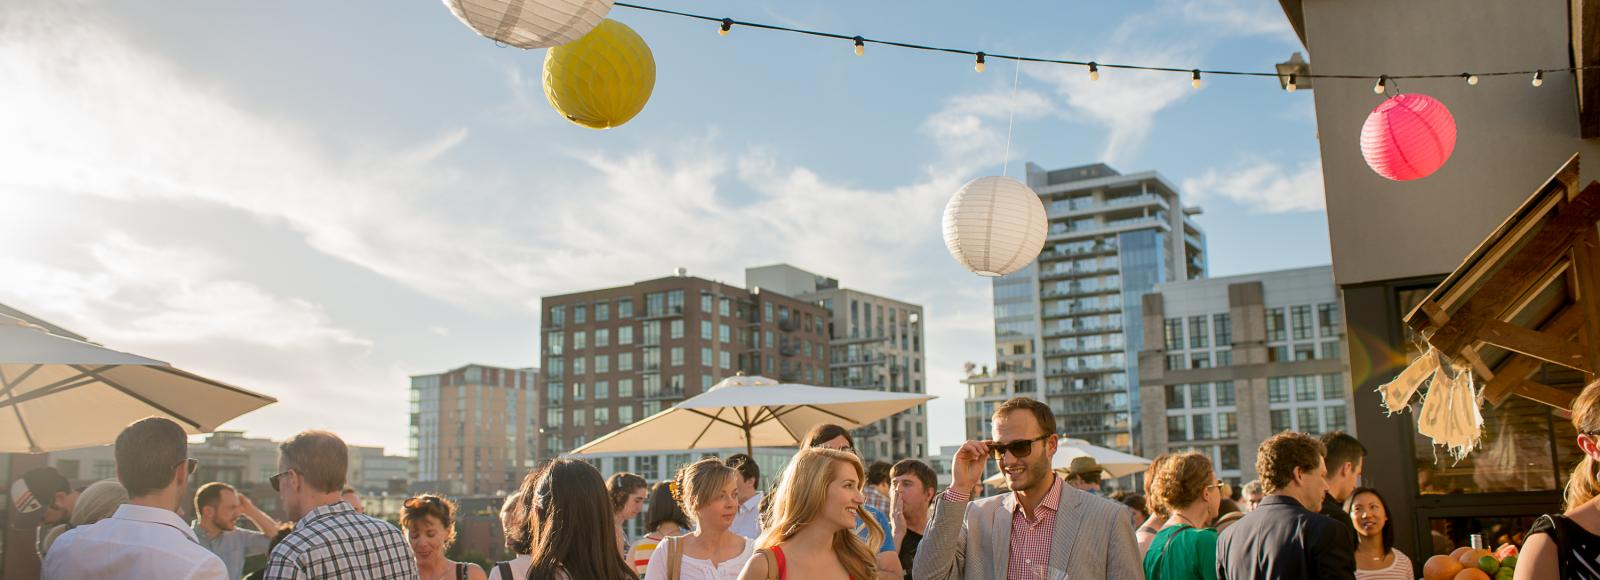 On a bright sunny day, the Ecotrust rooftop terrace is abuzz with people, sipping drinks and talking. Paper lanterns swing from a string of bulb lights.